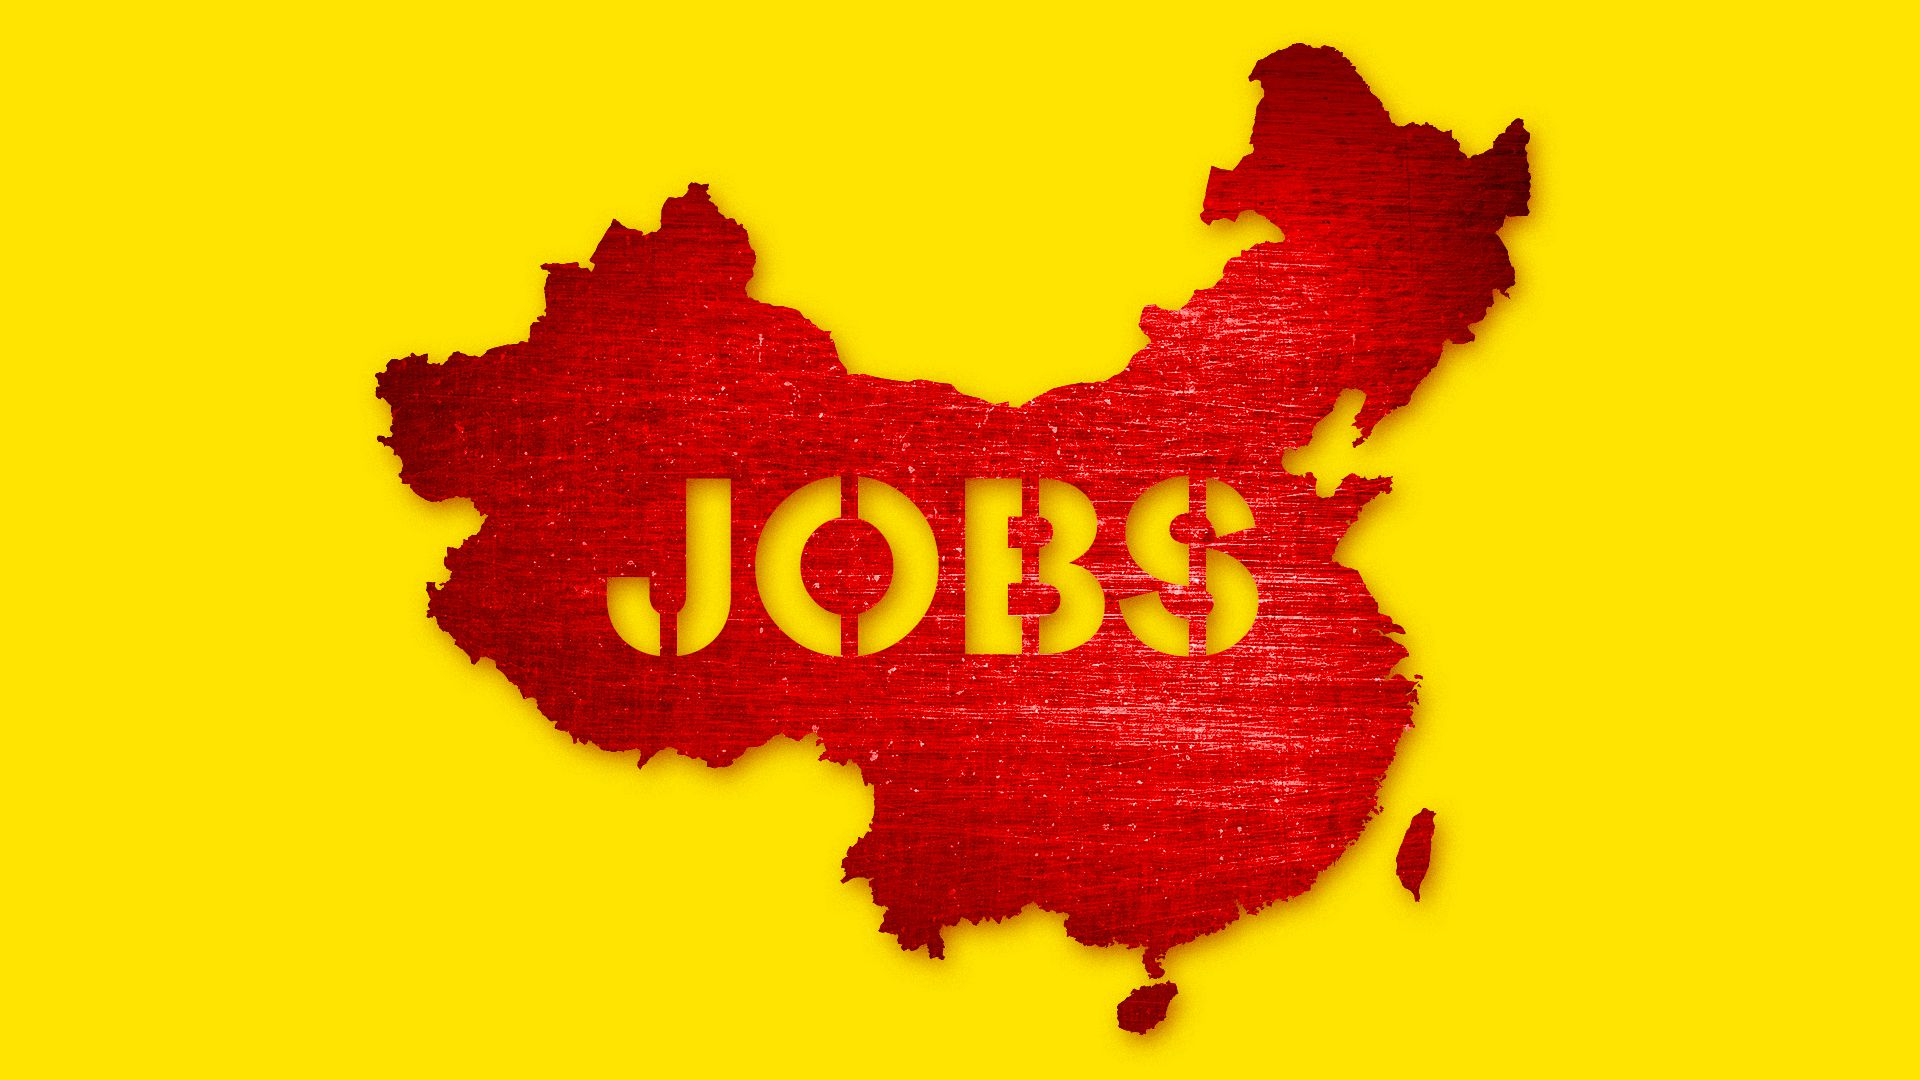 Illustration of a red map of China with yellow background and the word JOBS printed on the country.